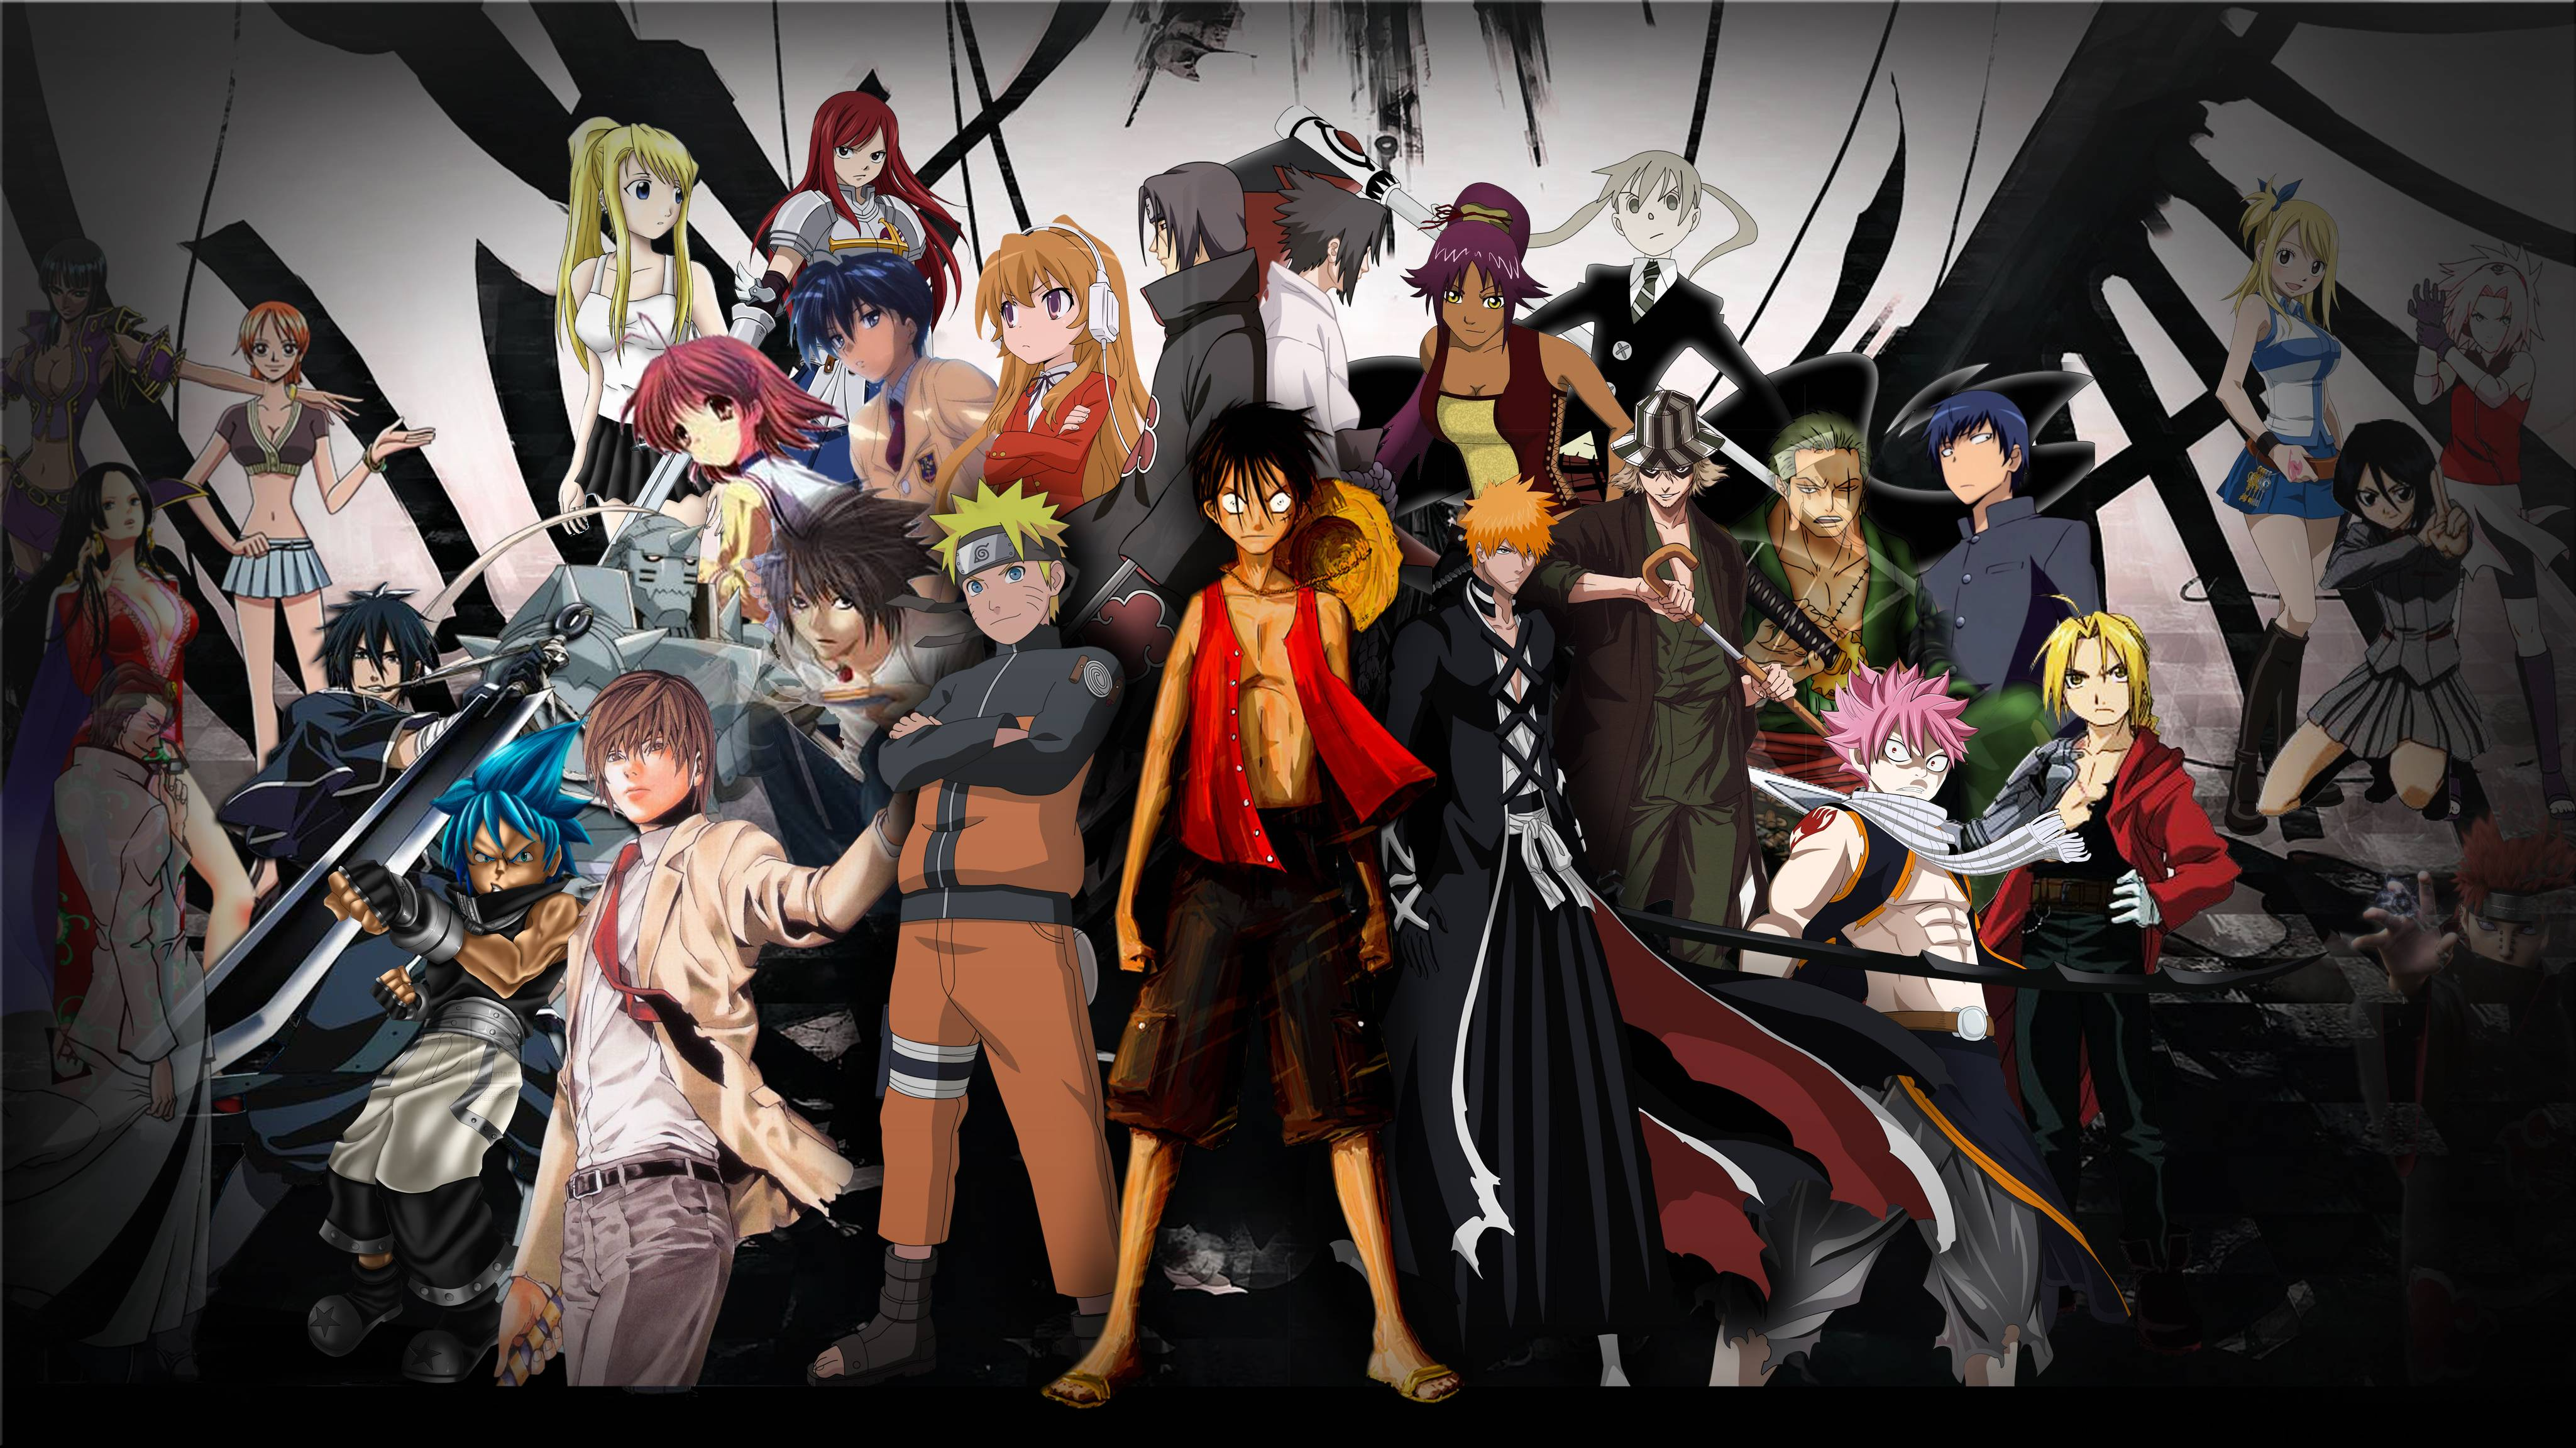 Anime Wallpapers HD download Wallpapers Backgrounds Images 4098x2304